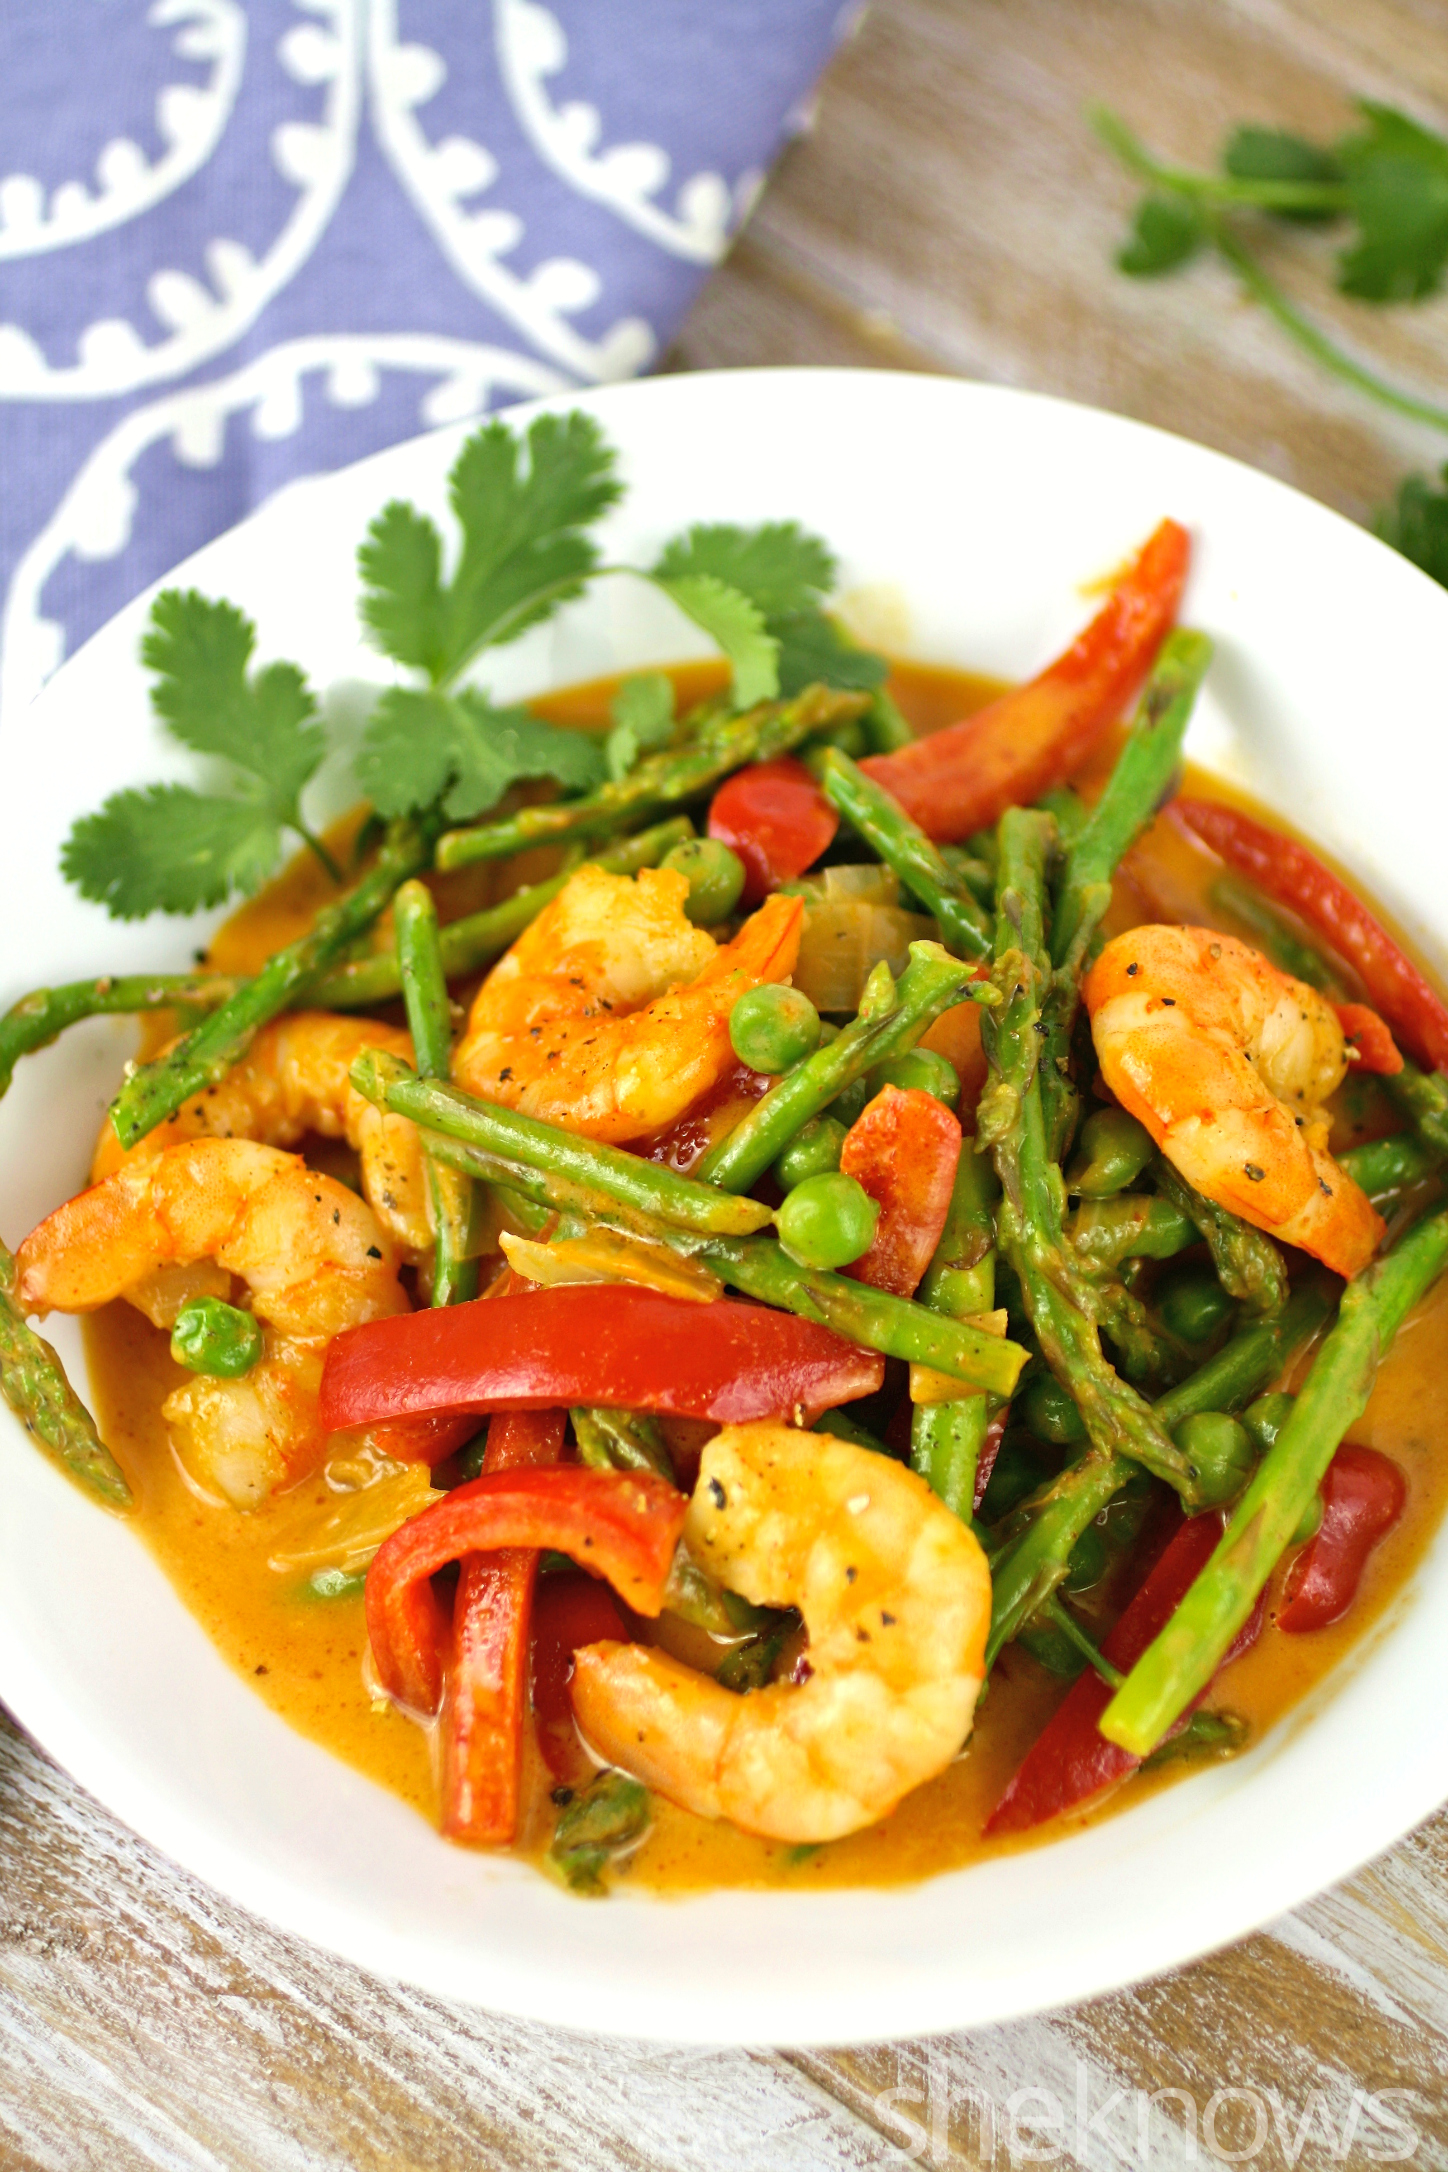 Get ready for dinner with this one-pot wonder: curried shrimp and spring vegetables